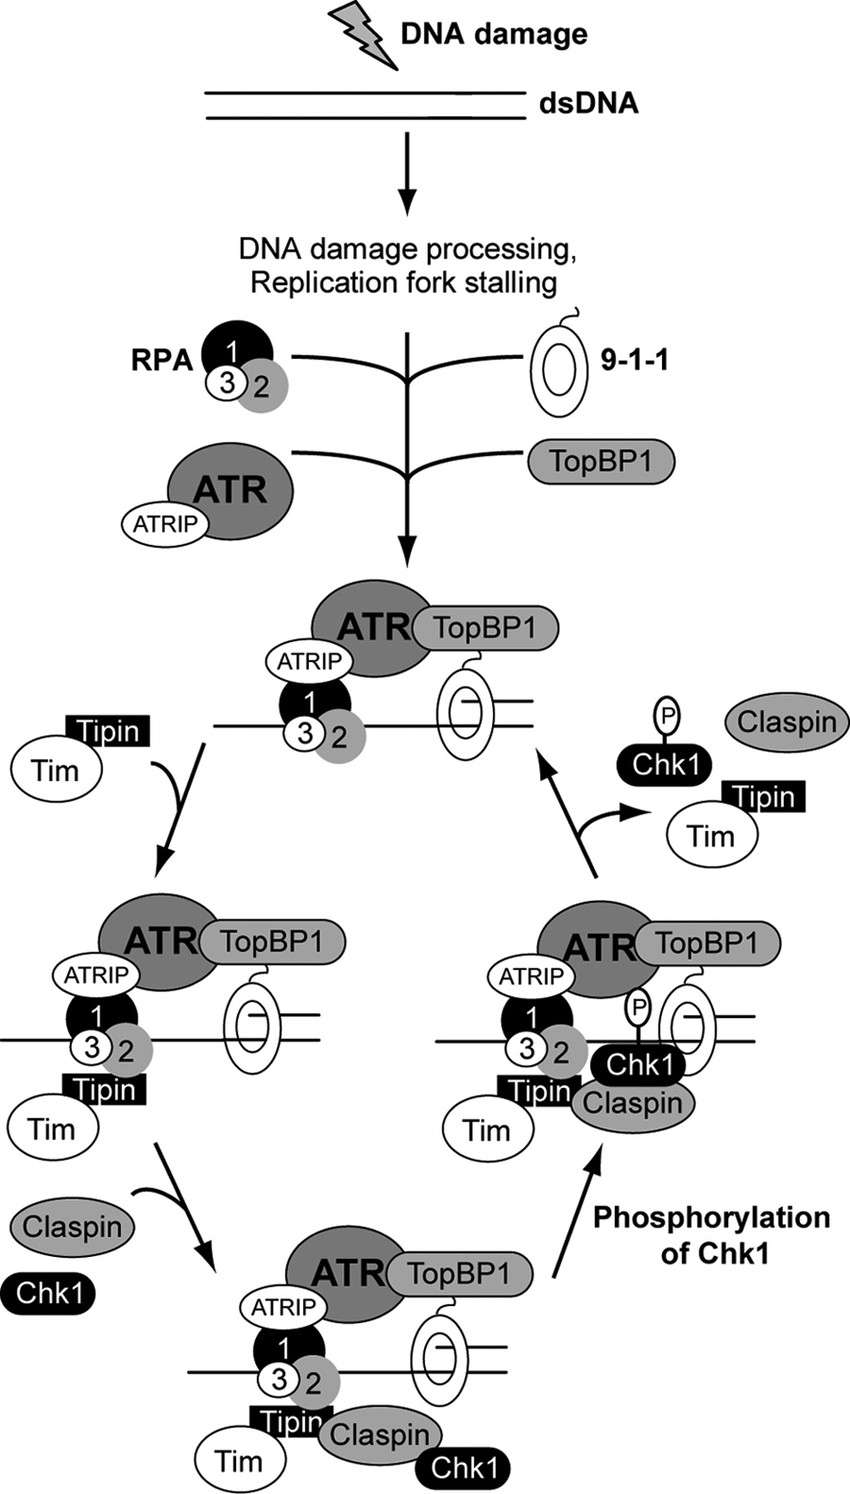 Model for Tipin function in ATR-Chk1 signaling. In